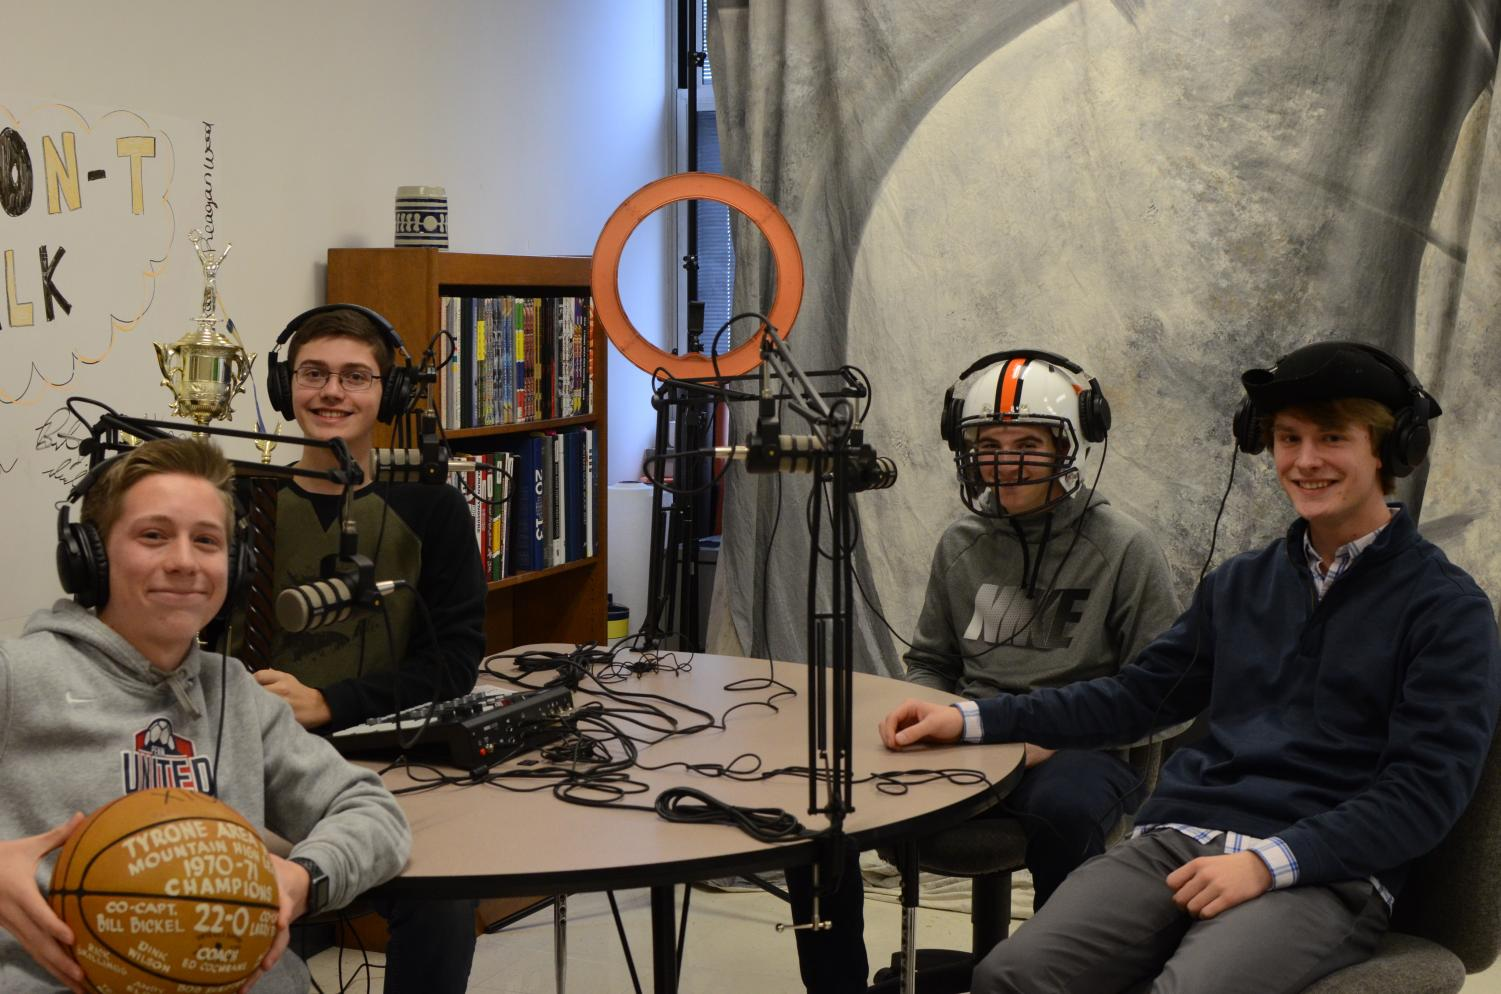 Talon-T Talk would like to thank Brandon Lucas for coming on the show.